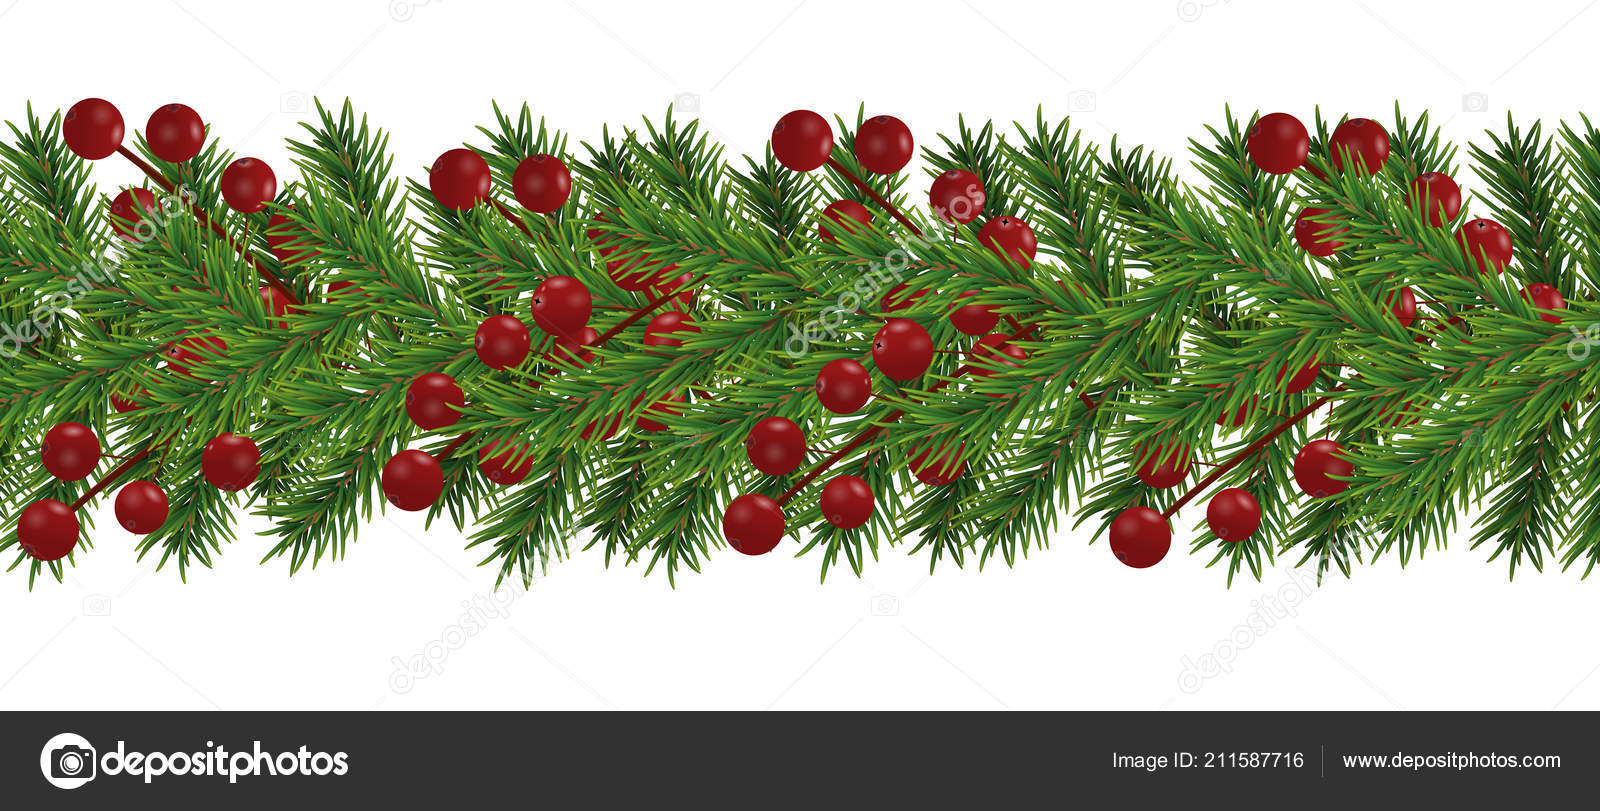 Border Realistic Looking Christmas Tree Branches Decorated Berries